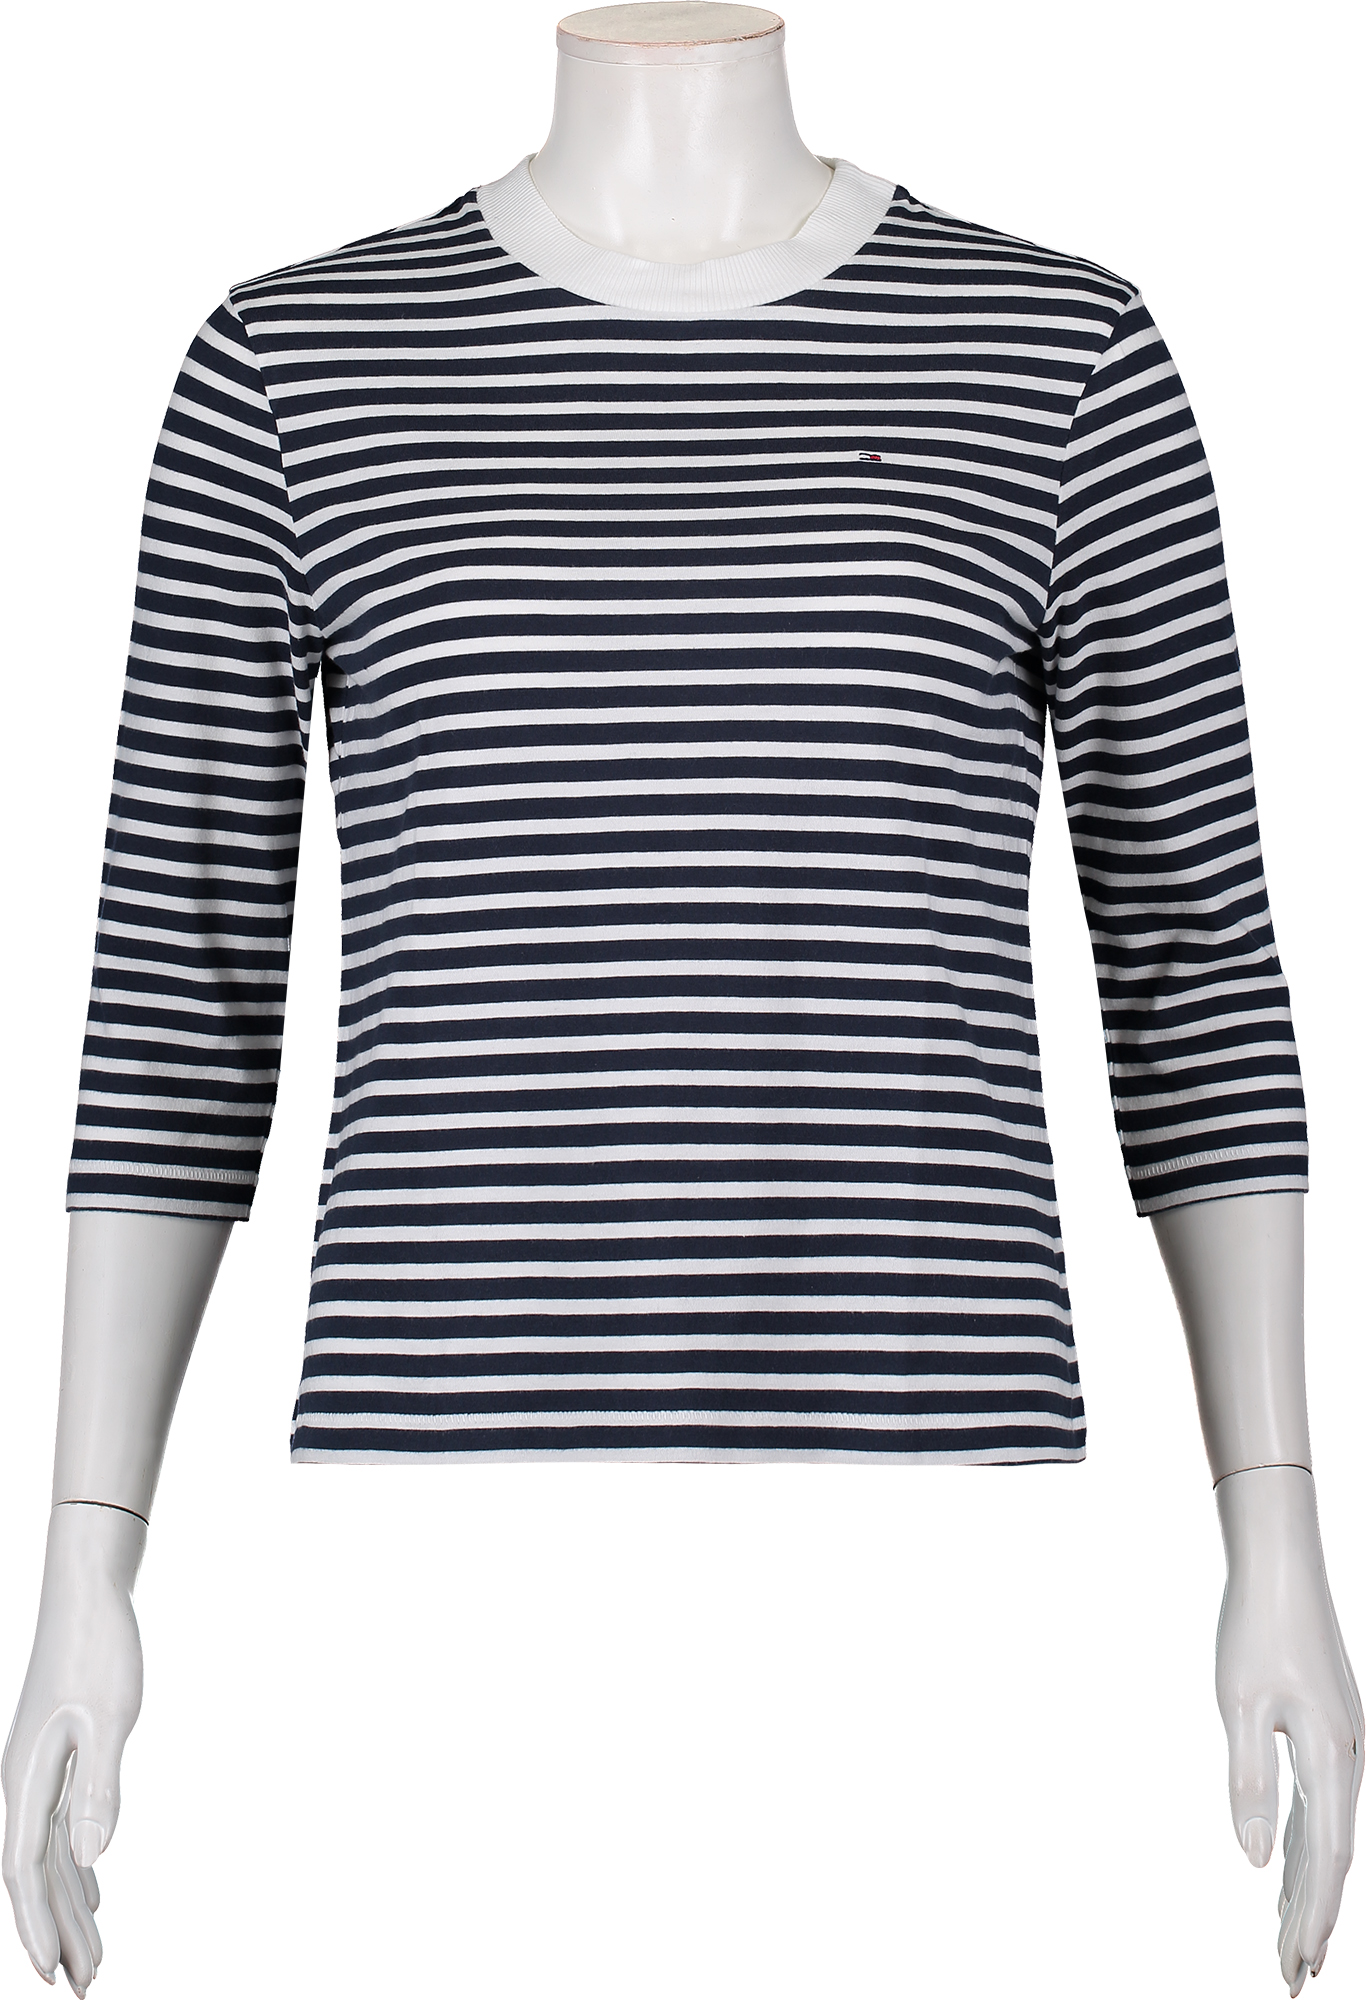 Piet Zoomers Tommy Hilfiger Jeans dames shirt